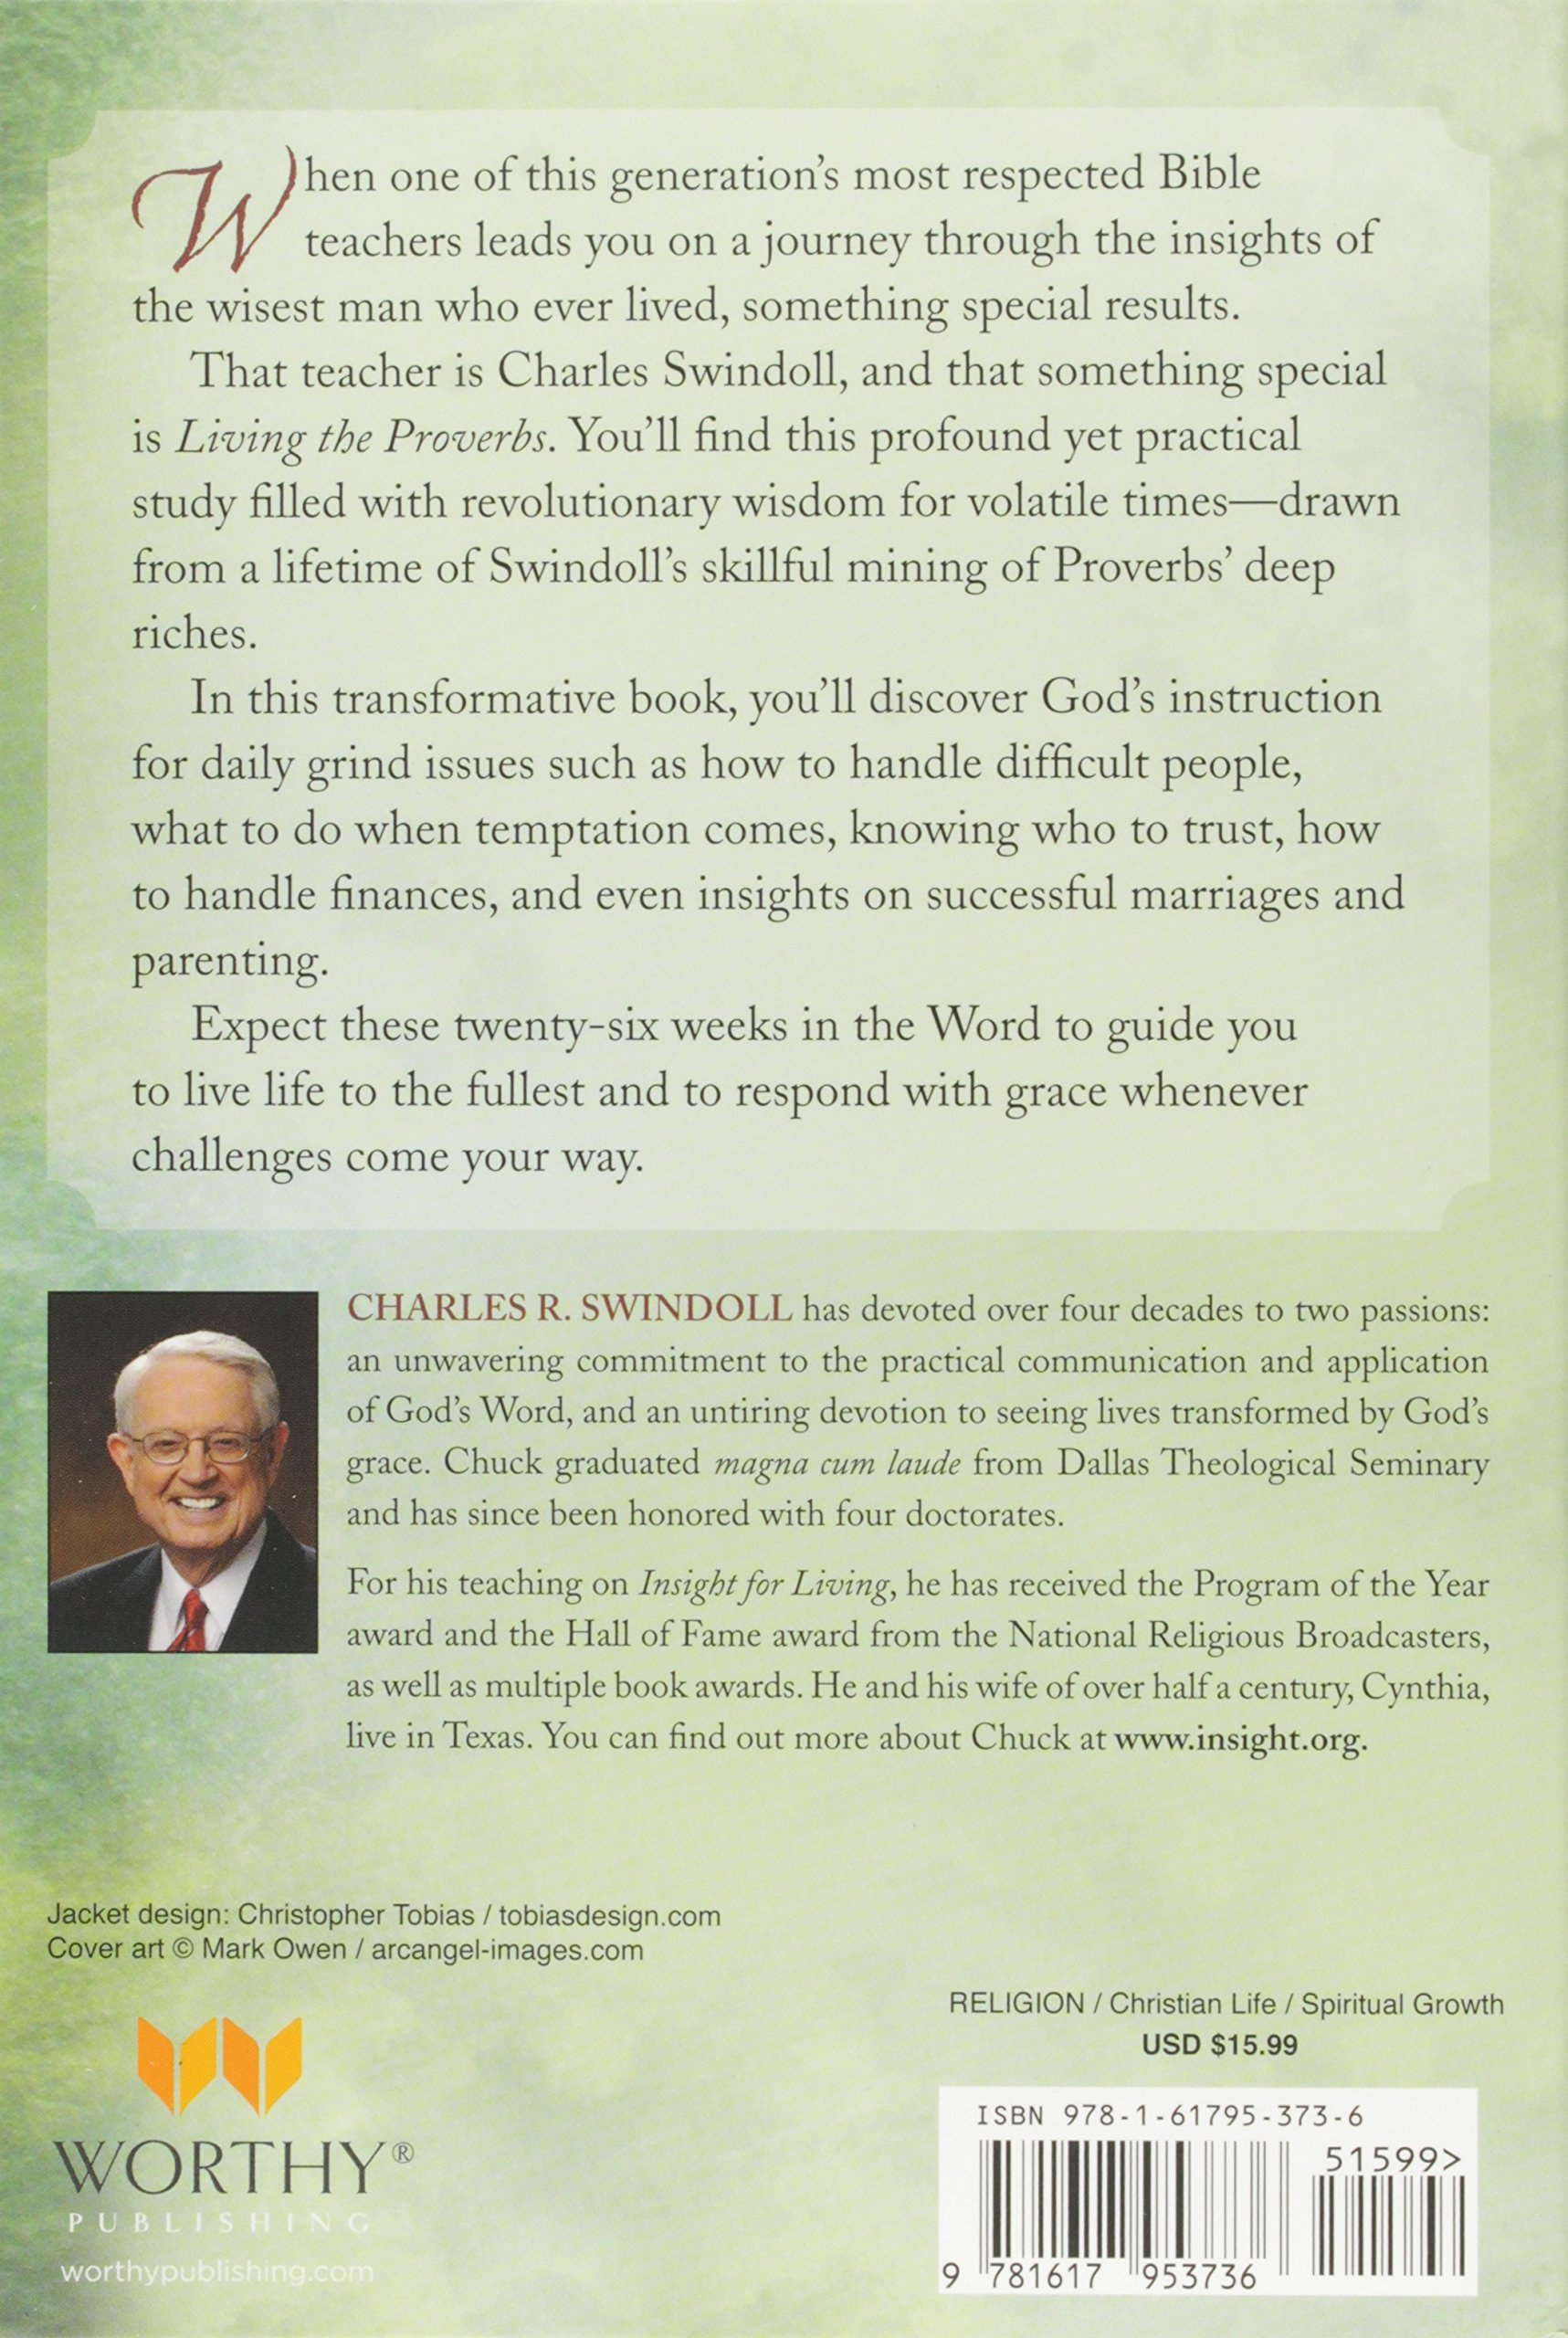 Living The Proverbs: Insights For The Daily Grind: Charles R Swindoll:  9781617953736: Amazon: Books